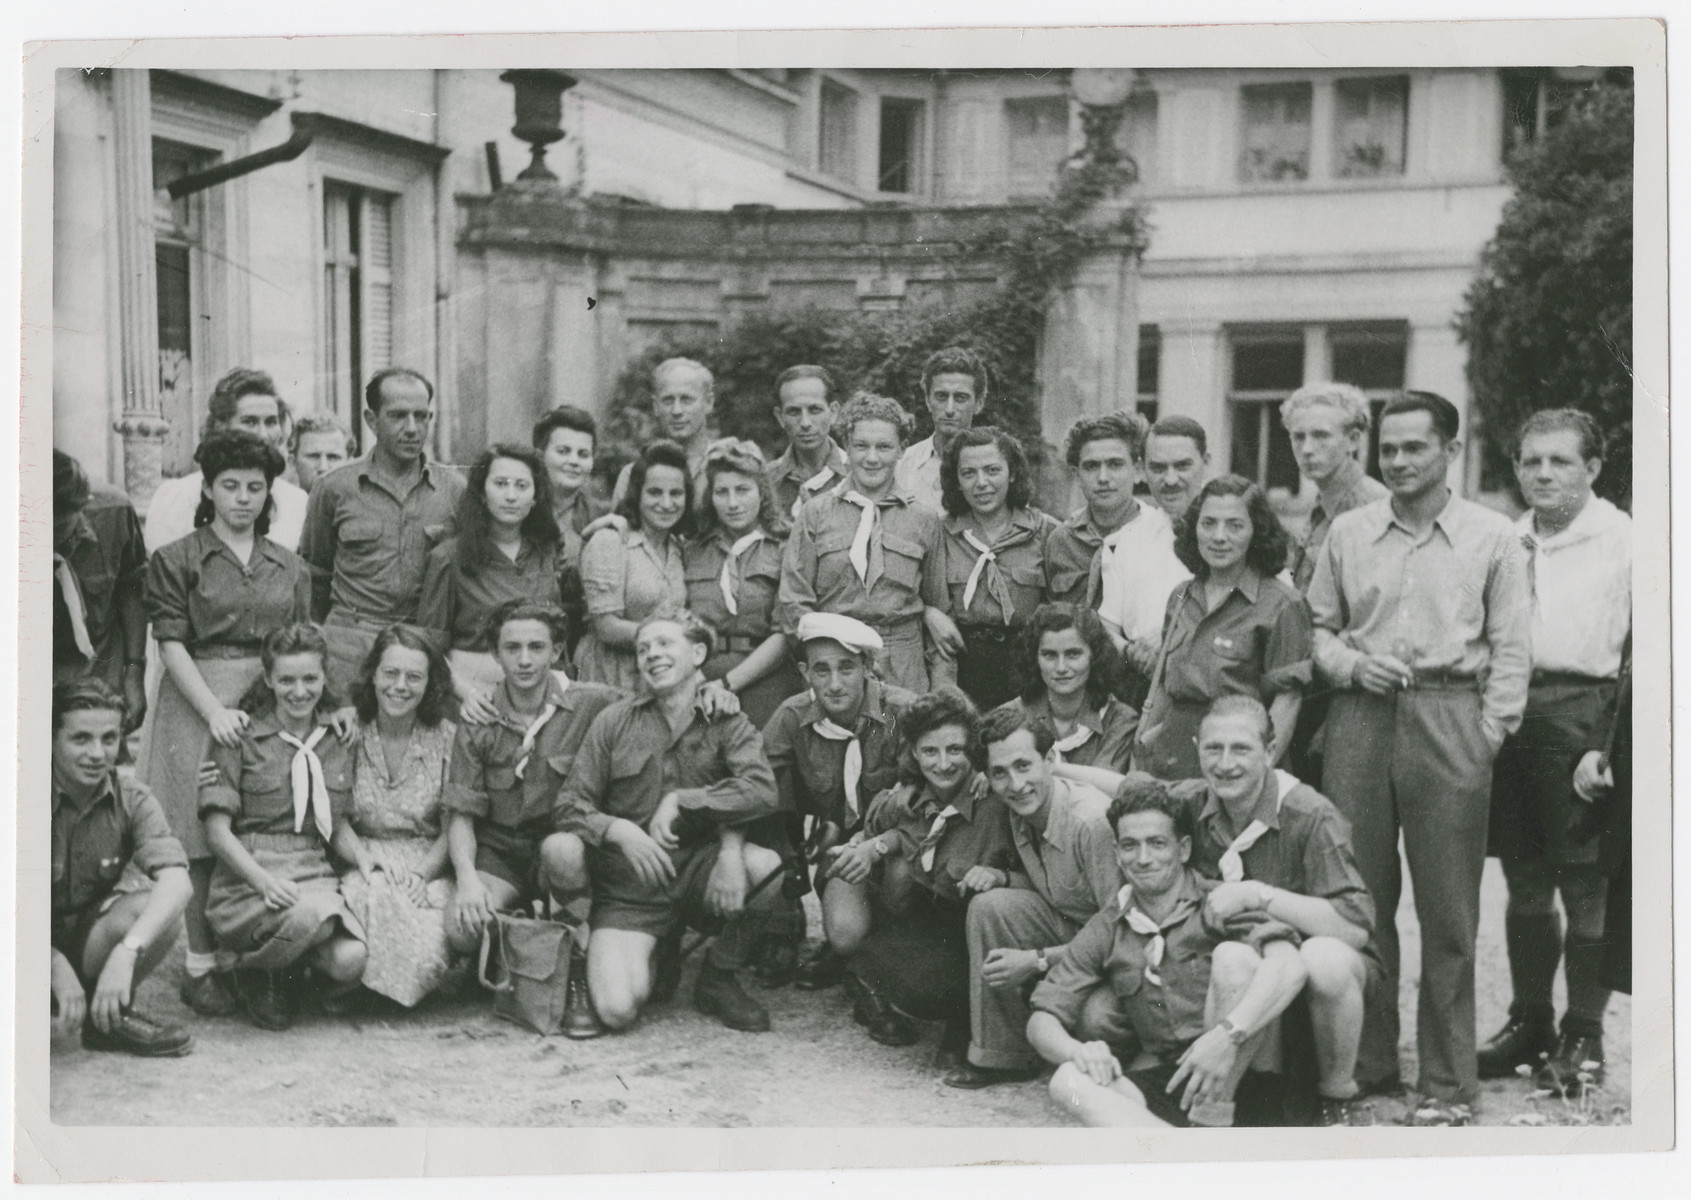 Group portrait of Zionist youth in Castella di Trevano  Most are members of Dror Habonim or Shomer Hatzair.